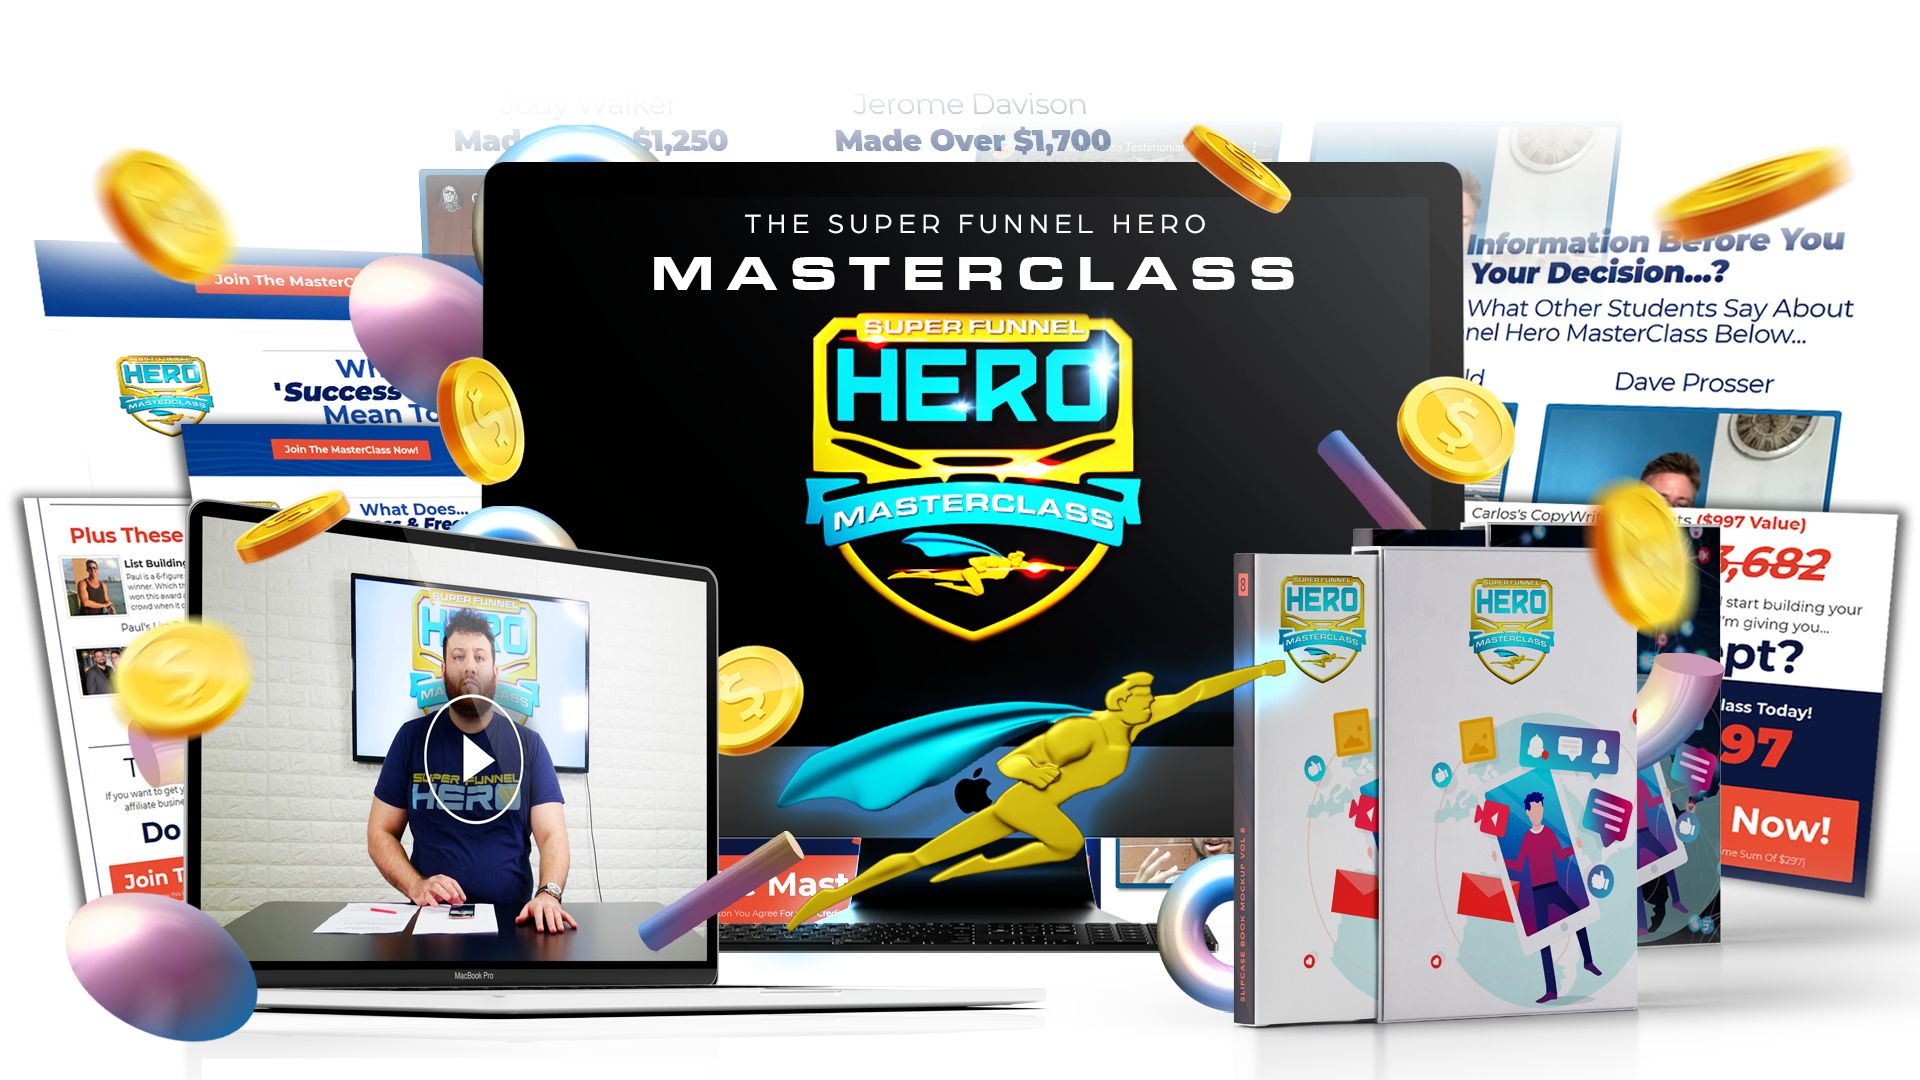 Super Funnel Hero Masterclass Review - Easily Bank Up To $987 A Lead